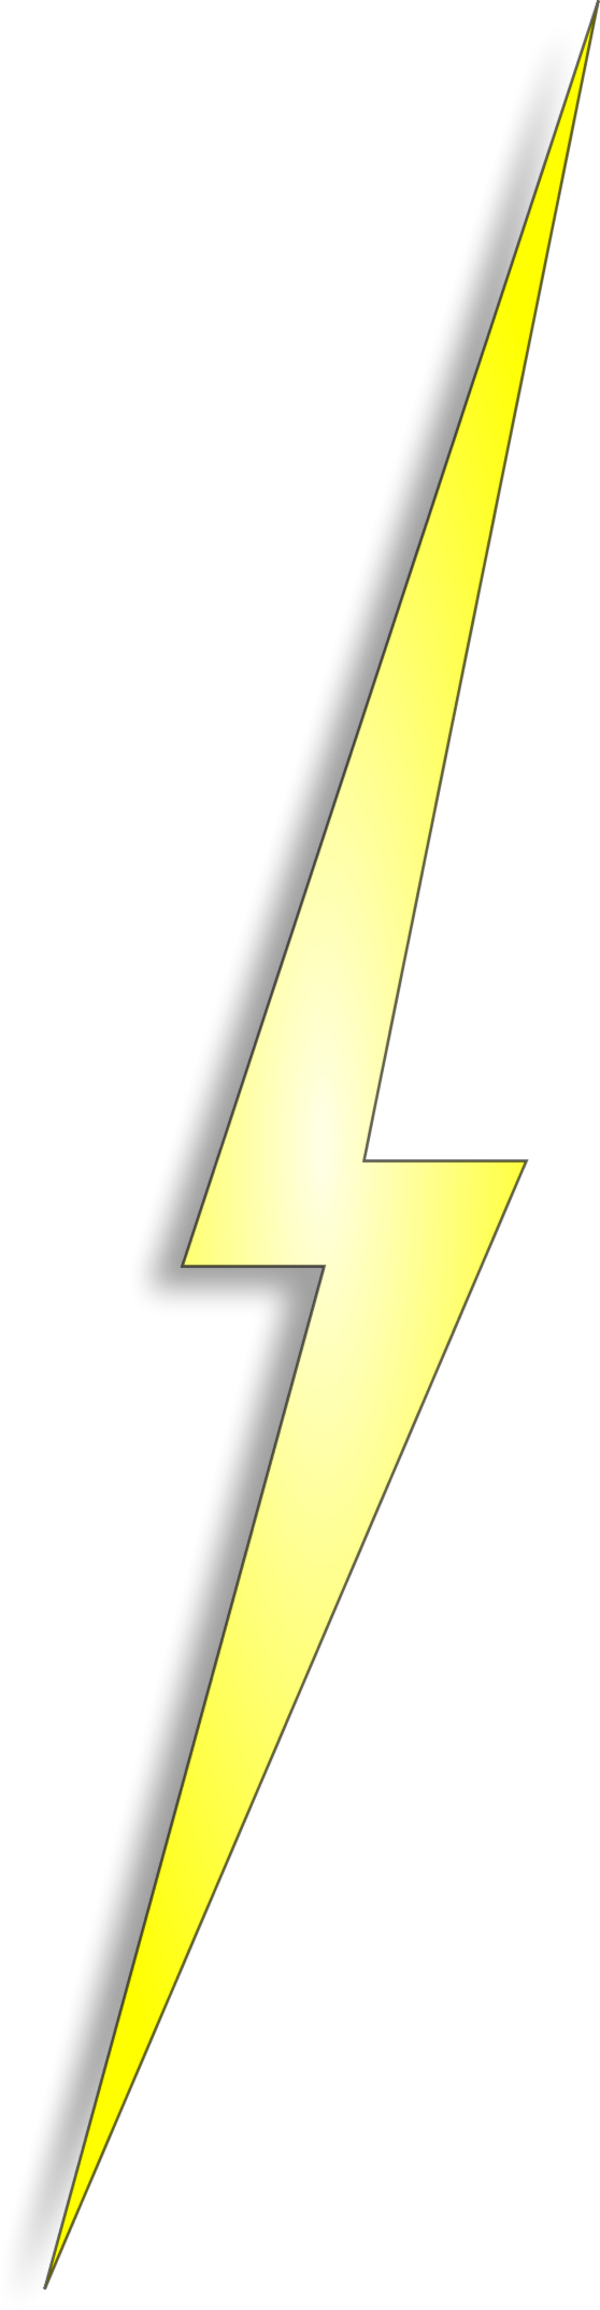 Lightning clipart simple.  collection of electricity